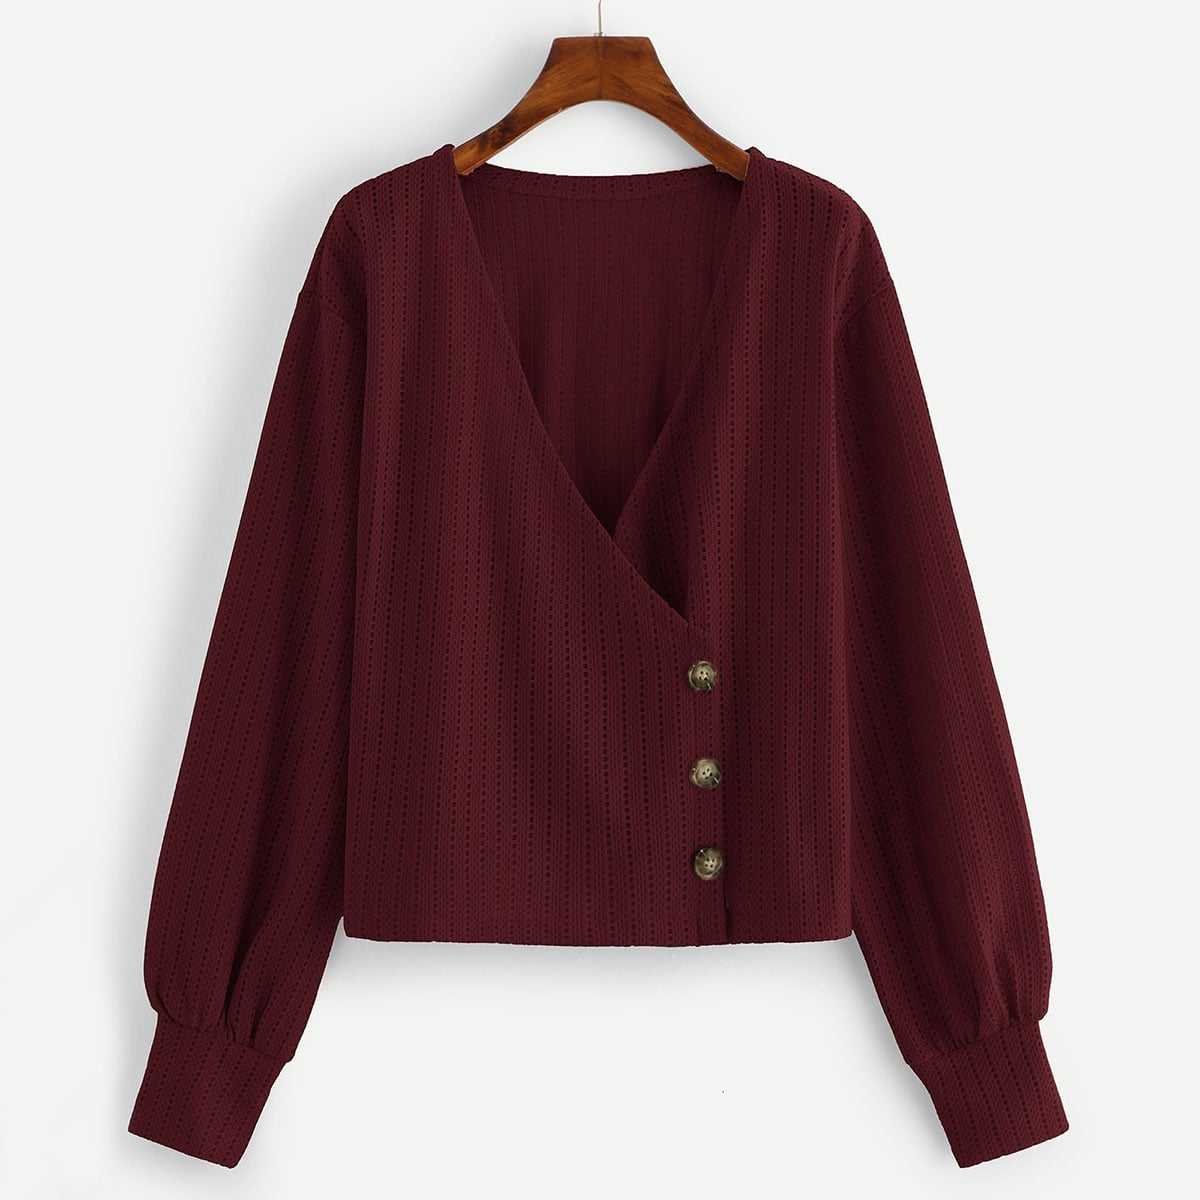 Side Button Through Surplice Blouse in Burgundy by ROMWE on GOOFASH